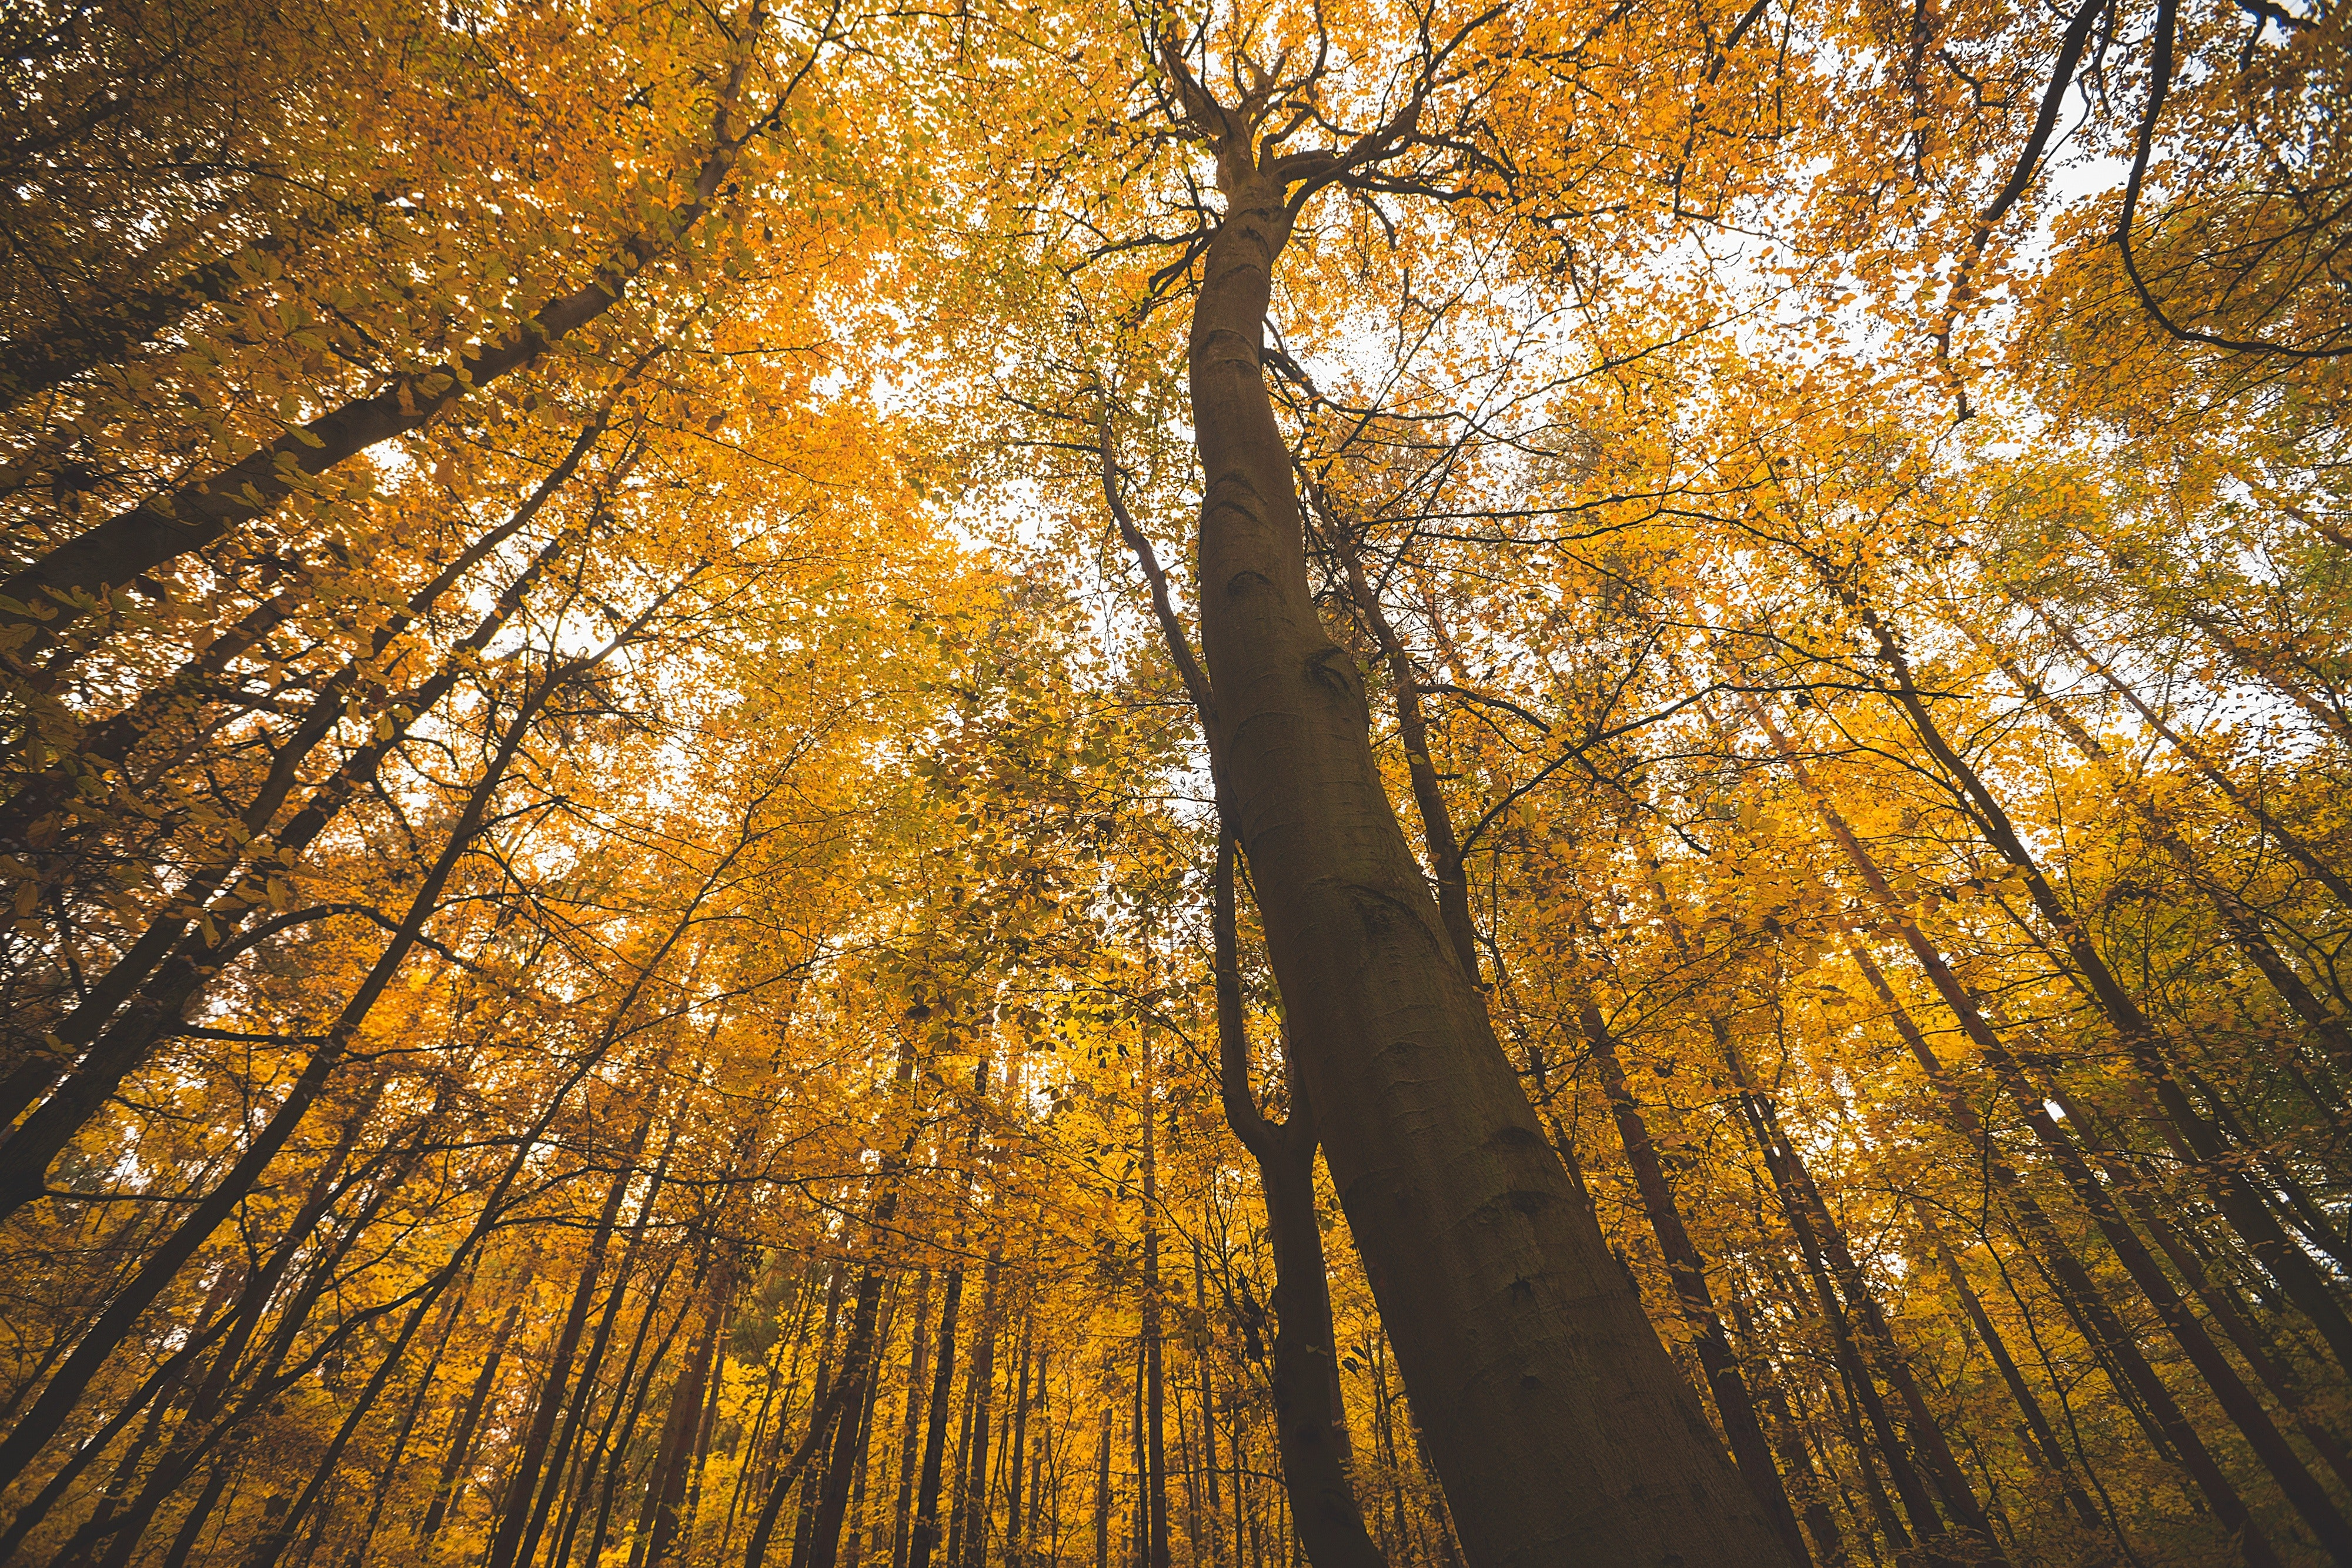 autumn-branches-fall-forest-235798